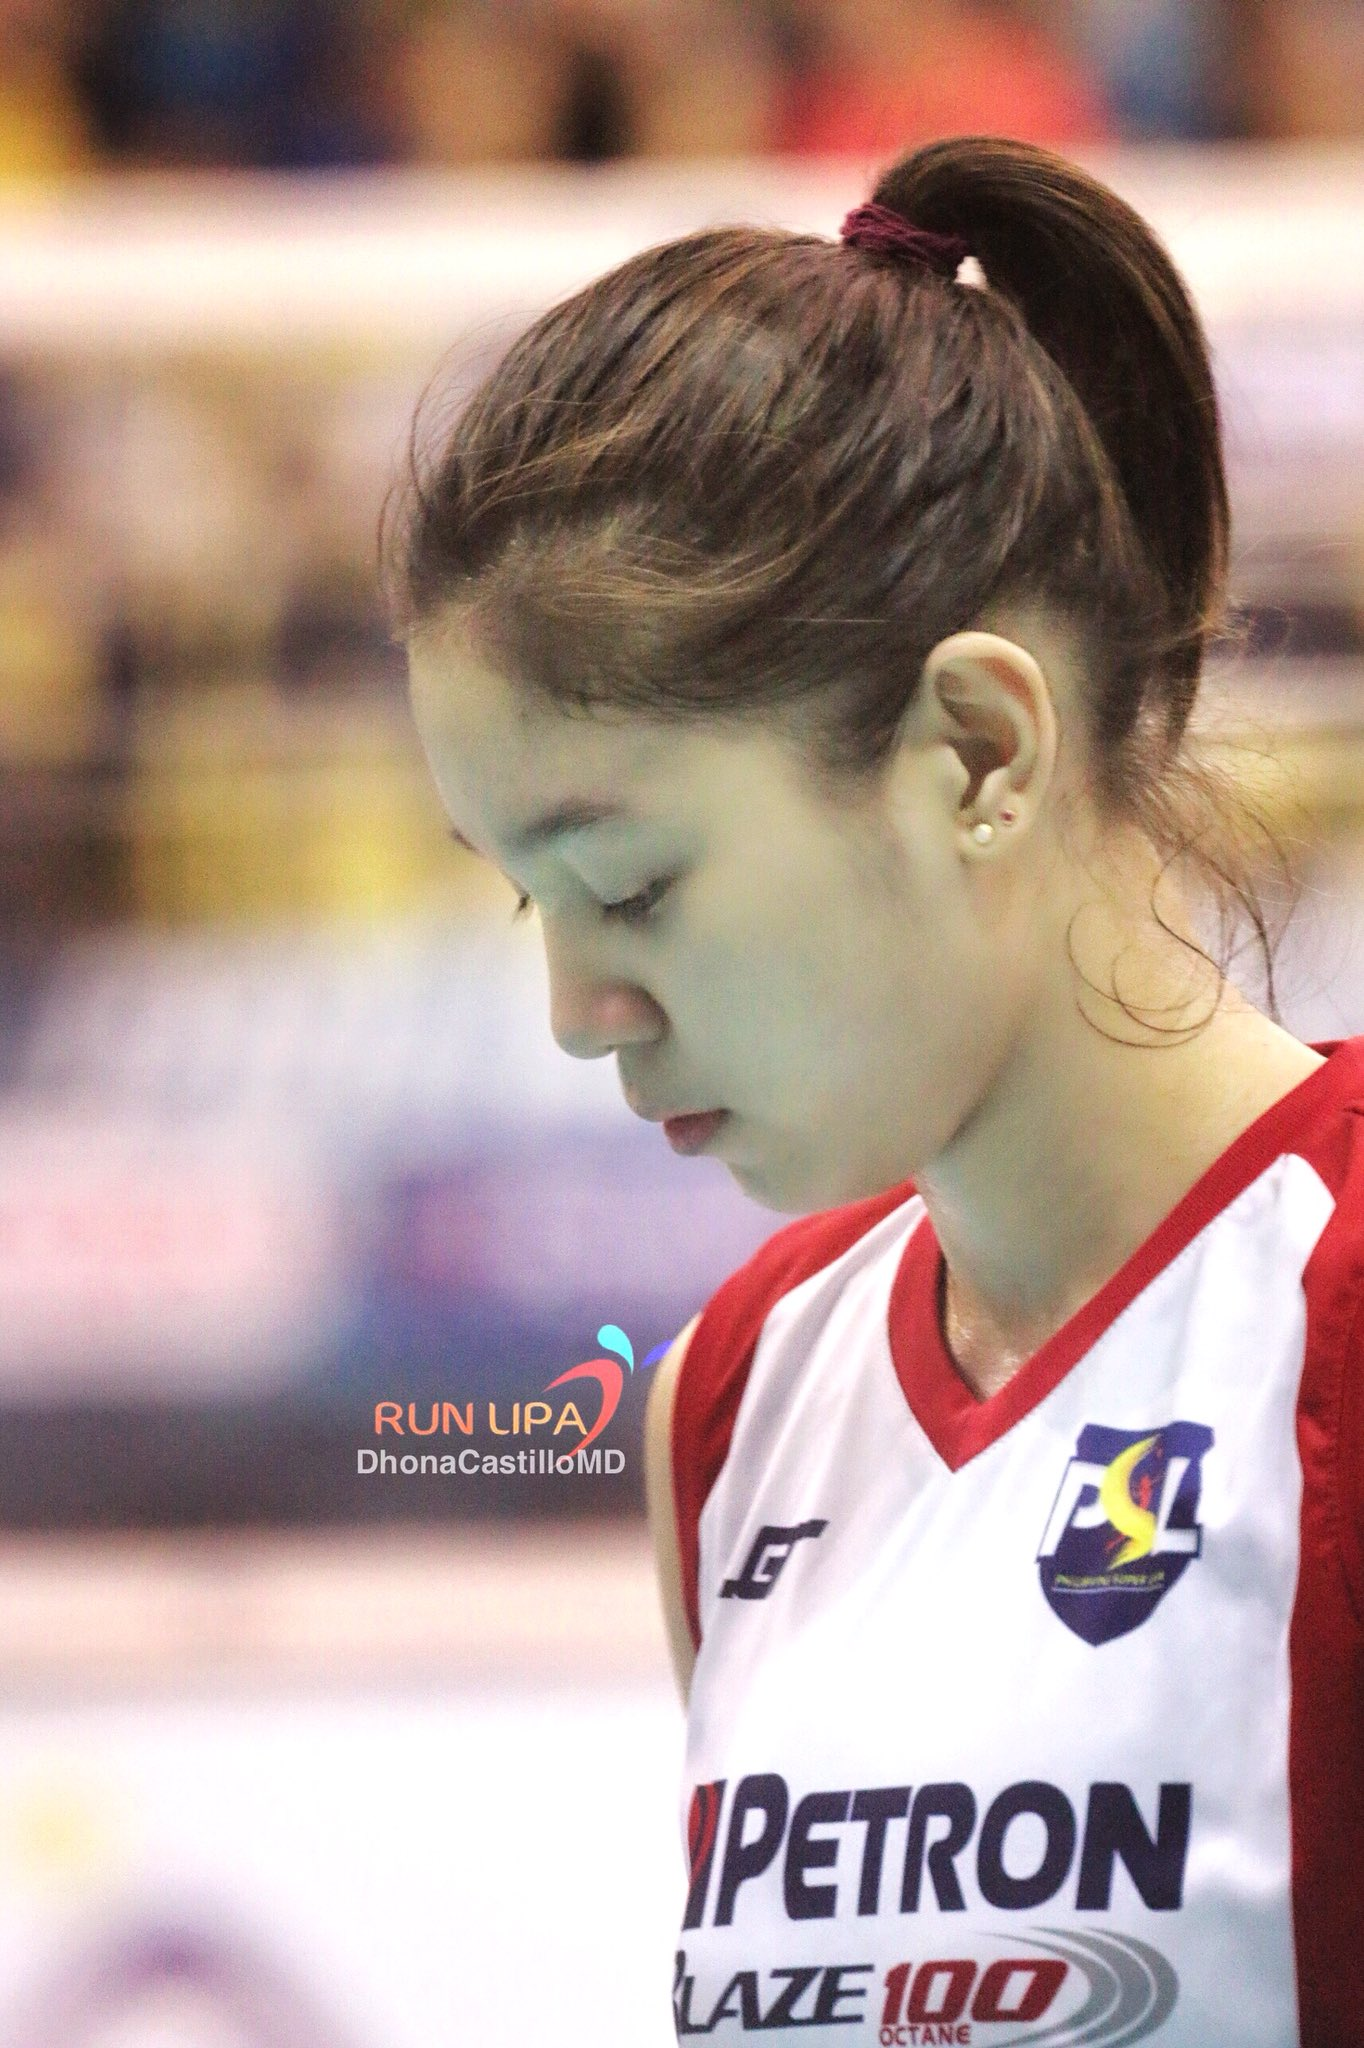 """""""Good things come to those who work hard and never give up.""""  @mikareyesss @SuperLigaPH  #PSLInvitationals #PSLonESPN5 https://t.co/yxckY3WRXQ"""